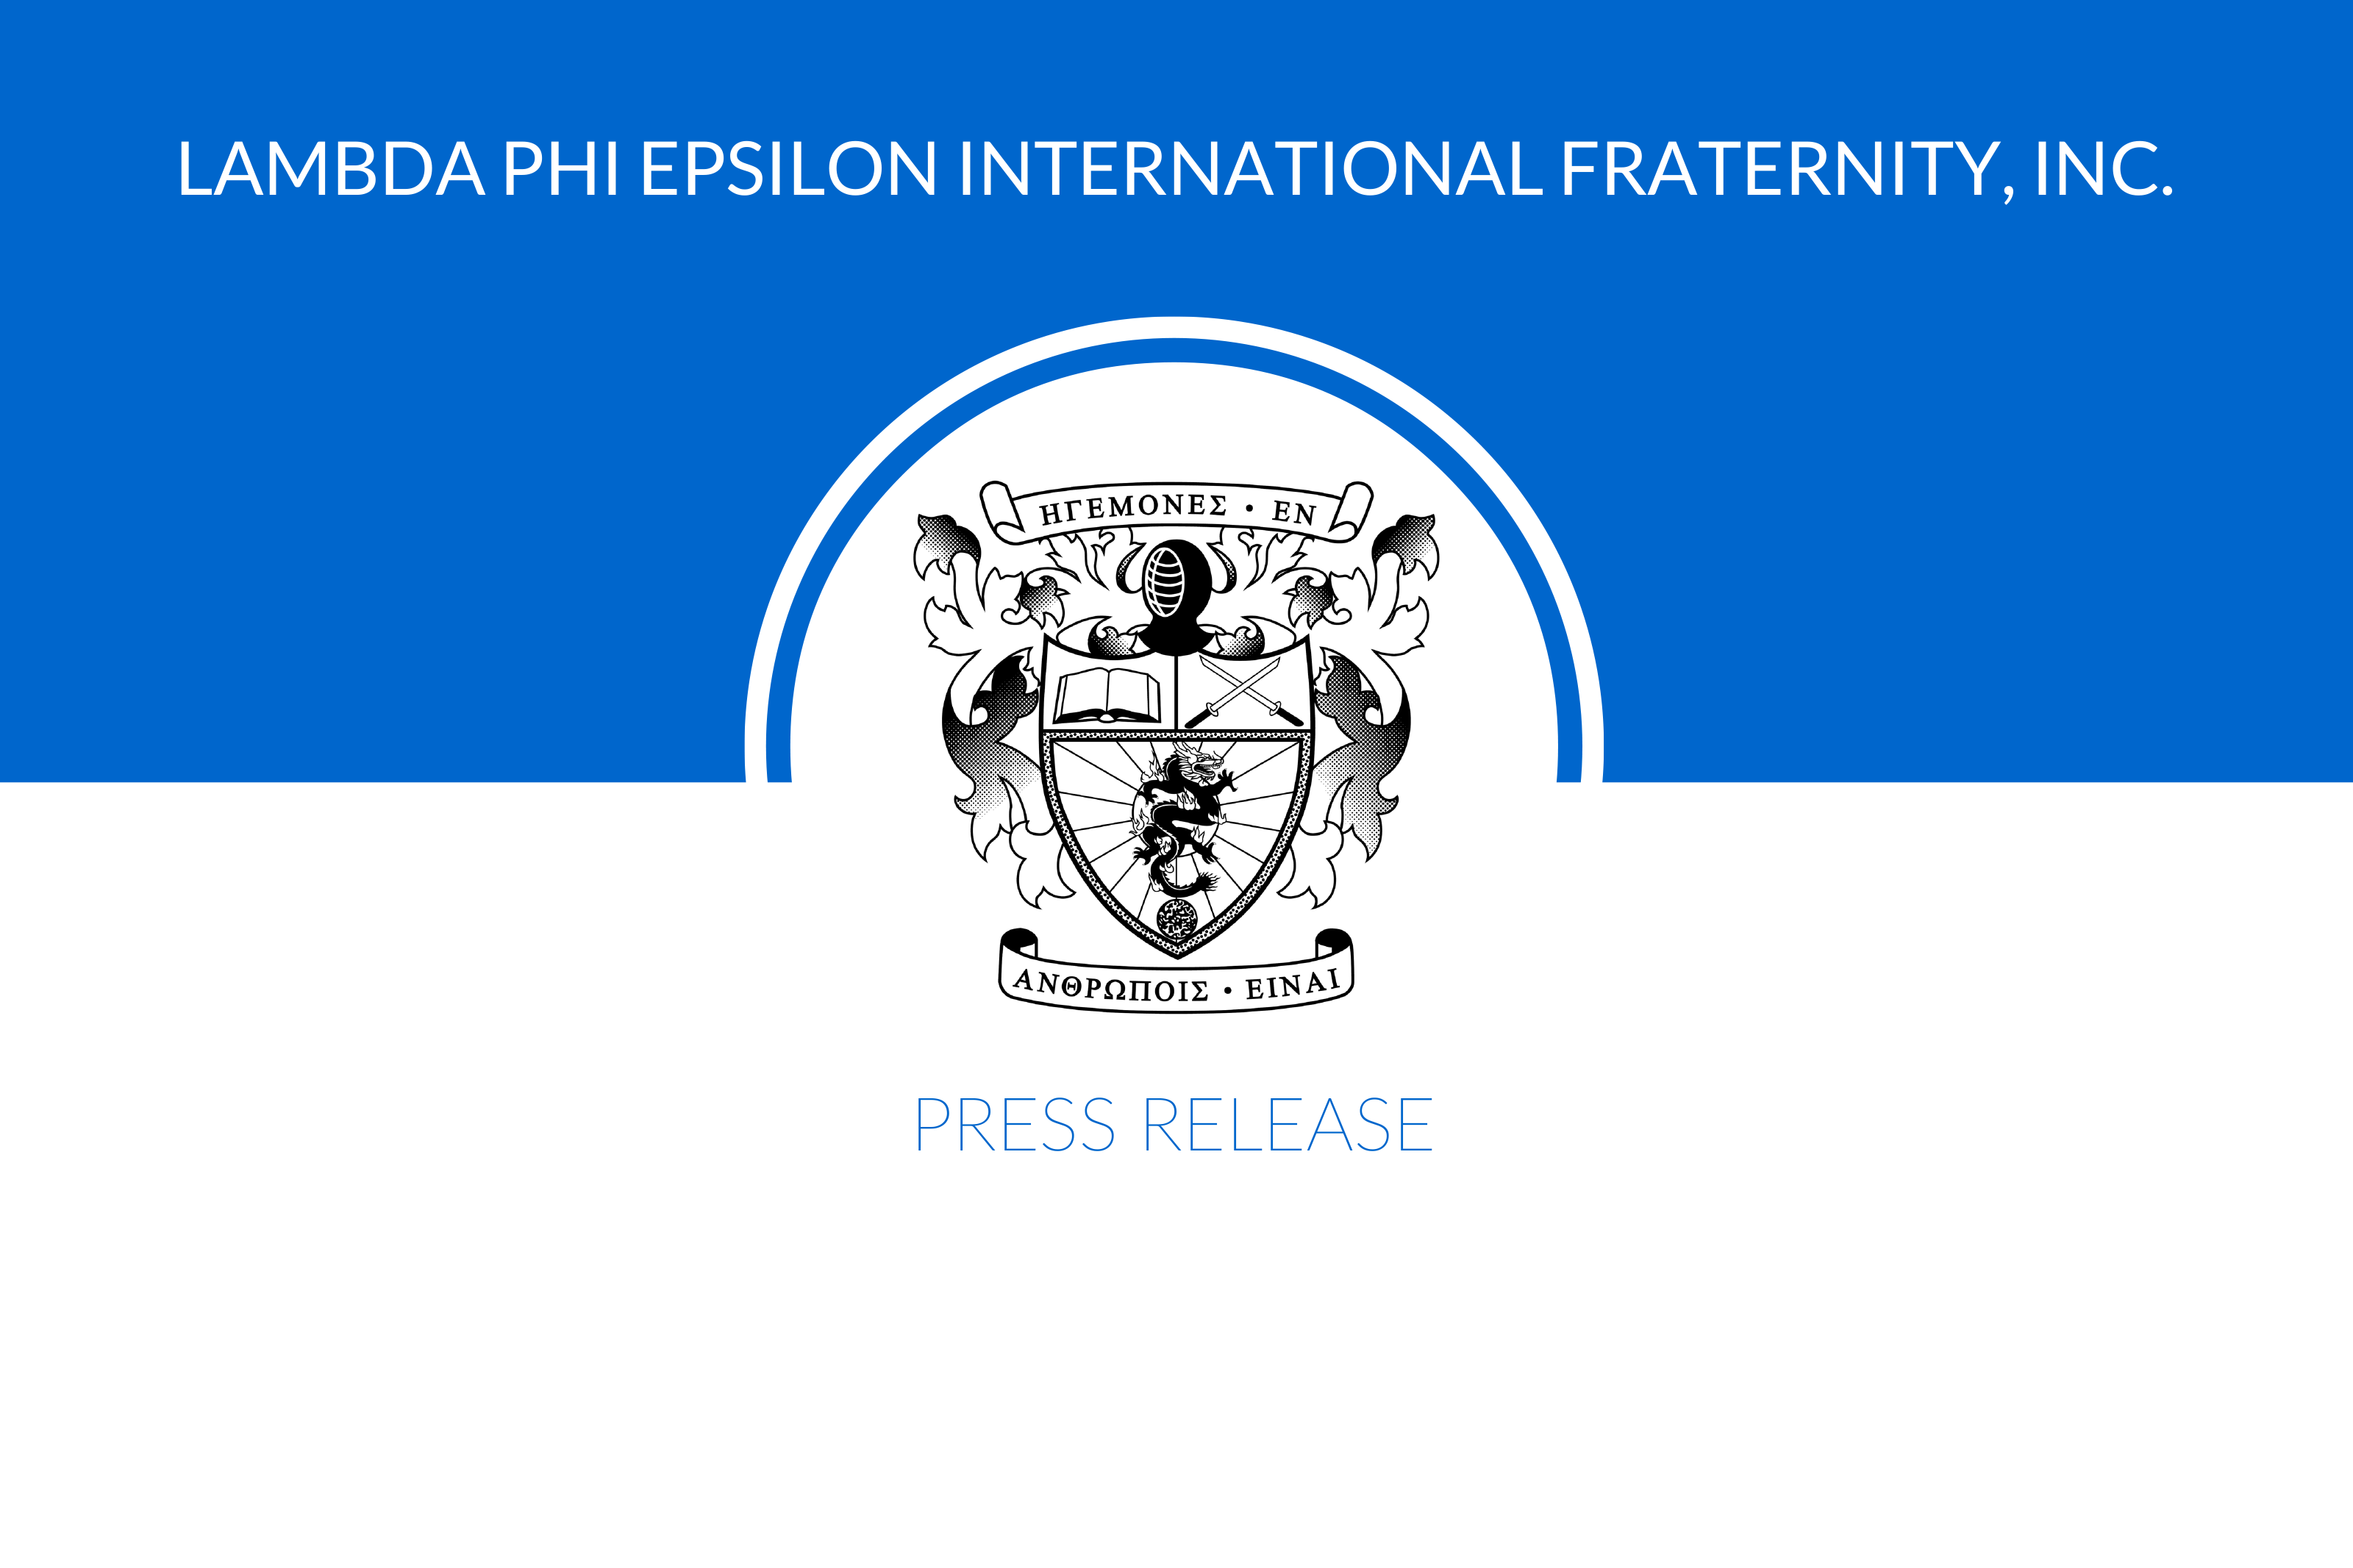 Fraternity Statement